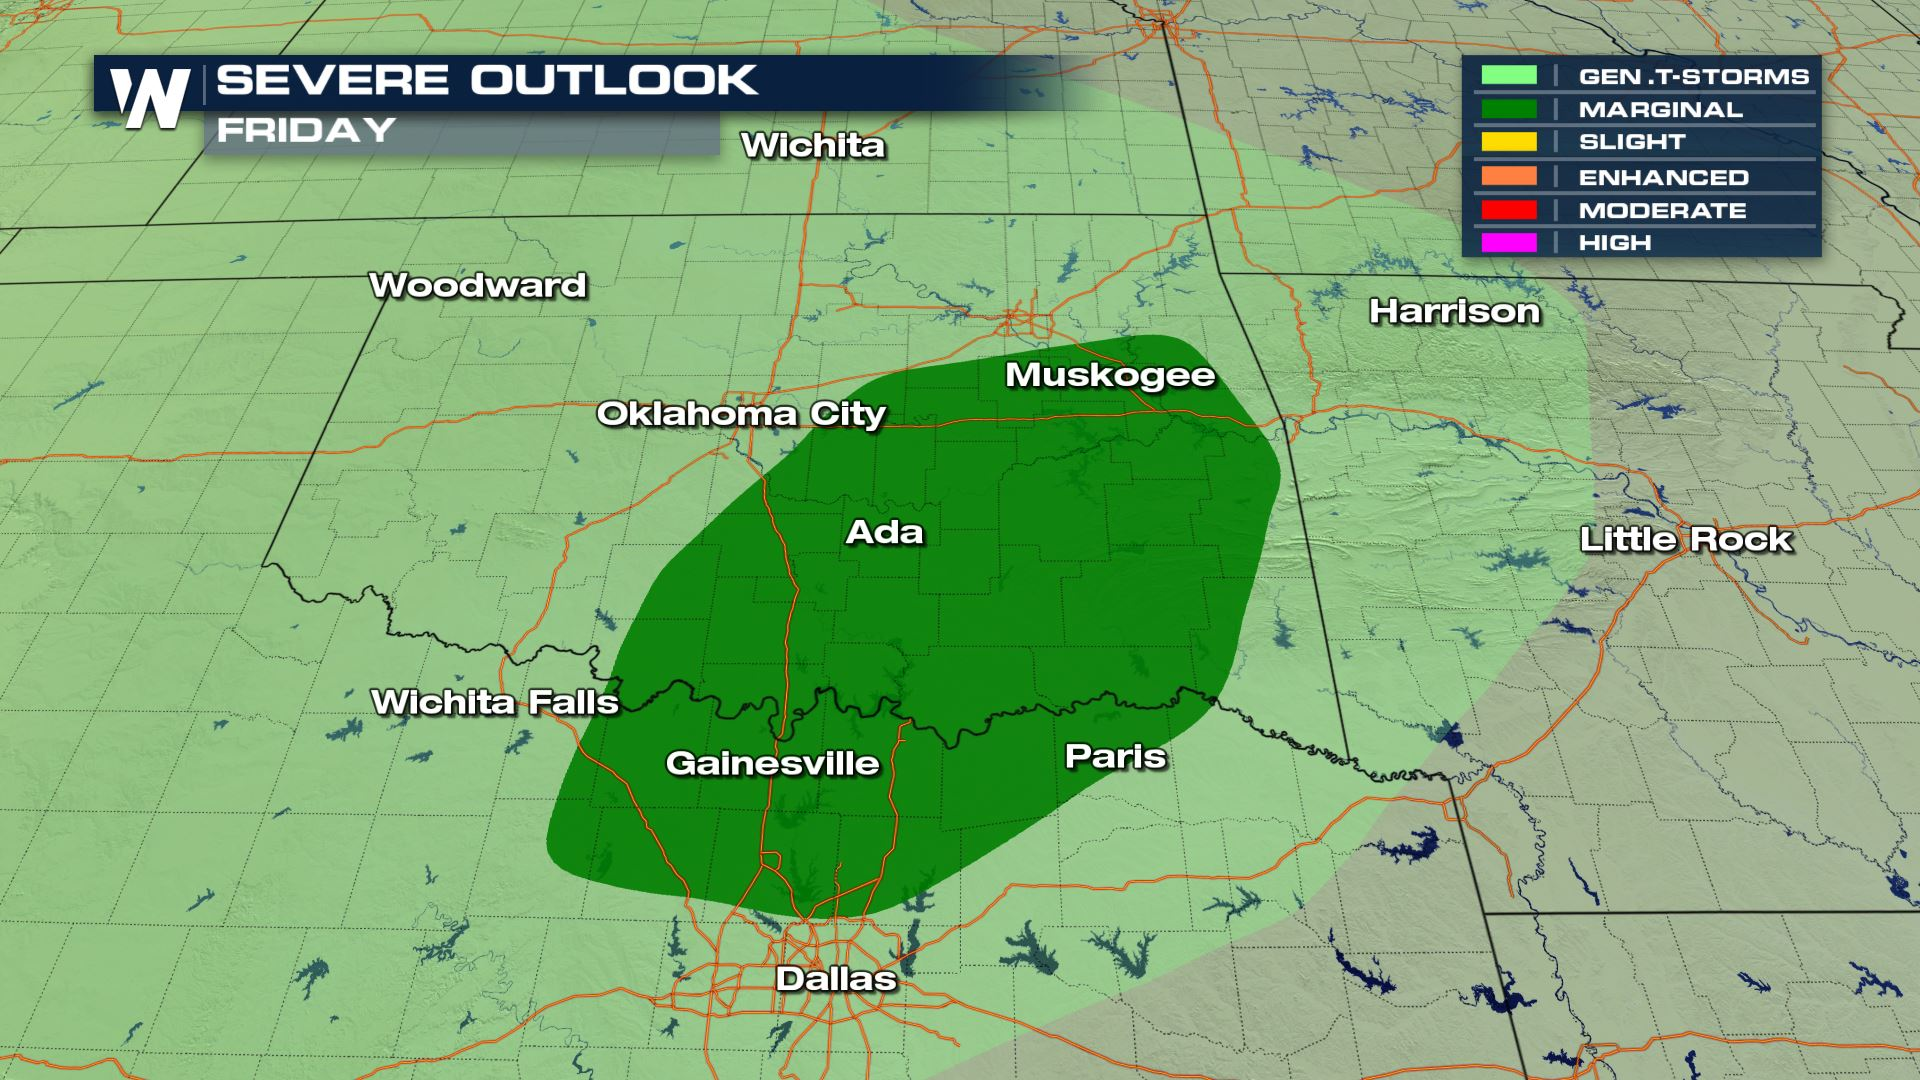 Map Of North Texas And Oklahoma.Severe Storm Chance For Parts Of Texas And Oklahoma On Friday